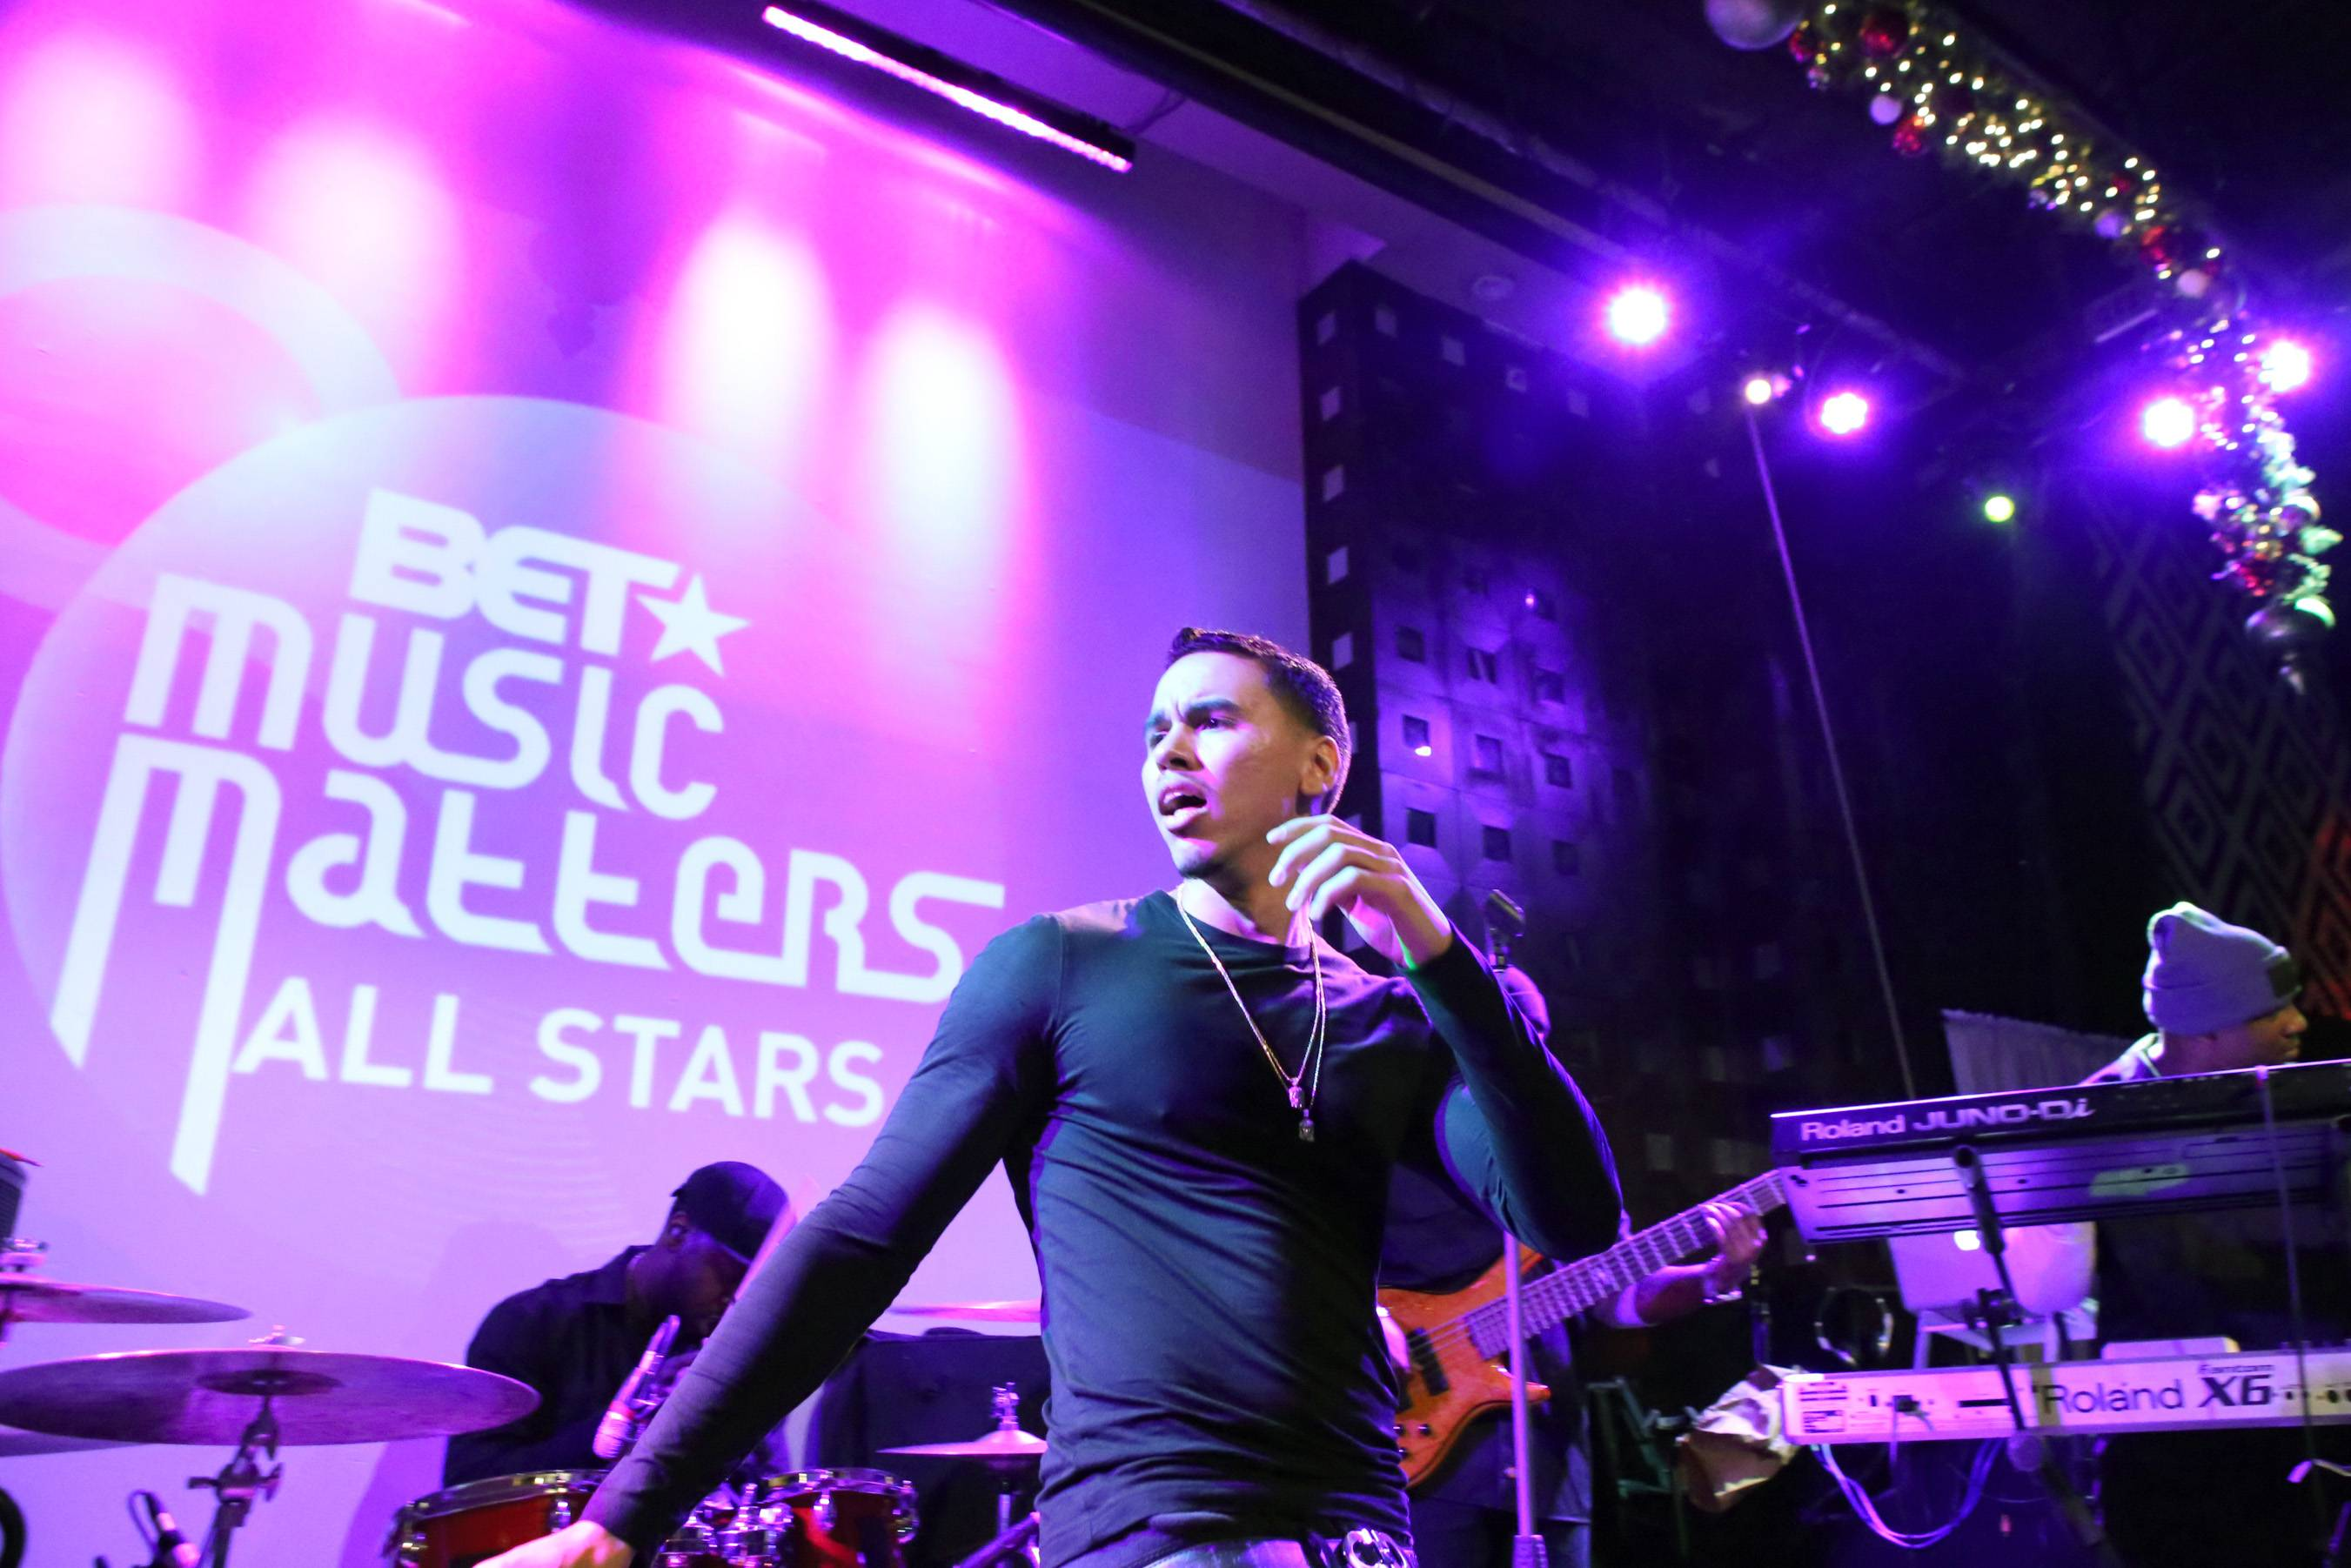 For the People - Adrian Marcel gets into it and the crowd responds. The up-and-coming crooner had a big 2013 and is looking to enjoy an even bigger 2014.(Photo: Bennett Raglin/BET/Getty Images for BET)